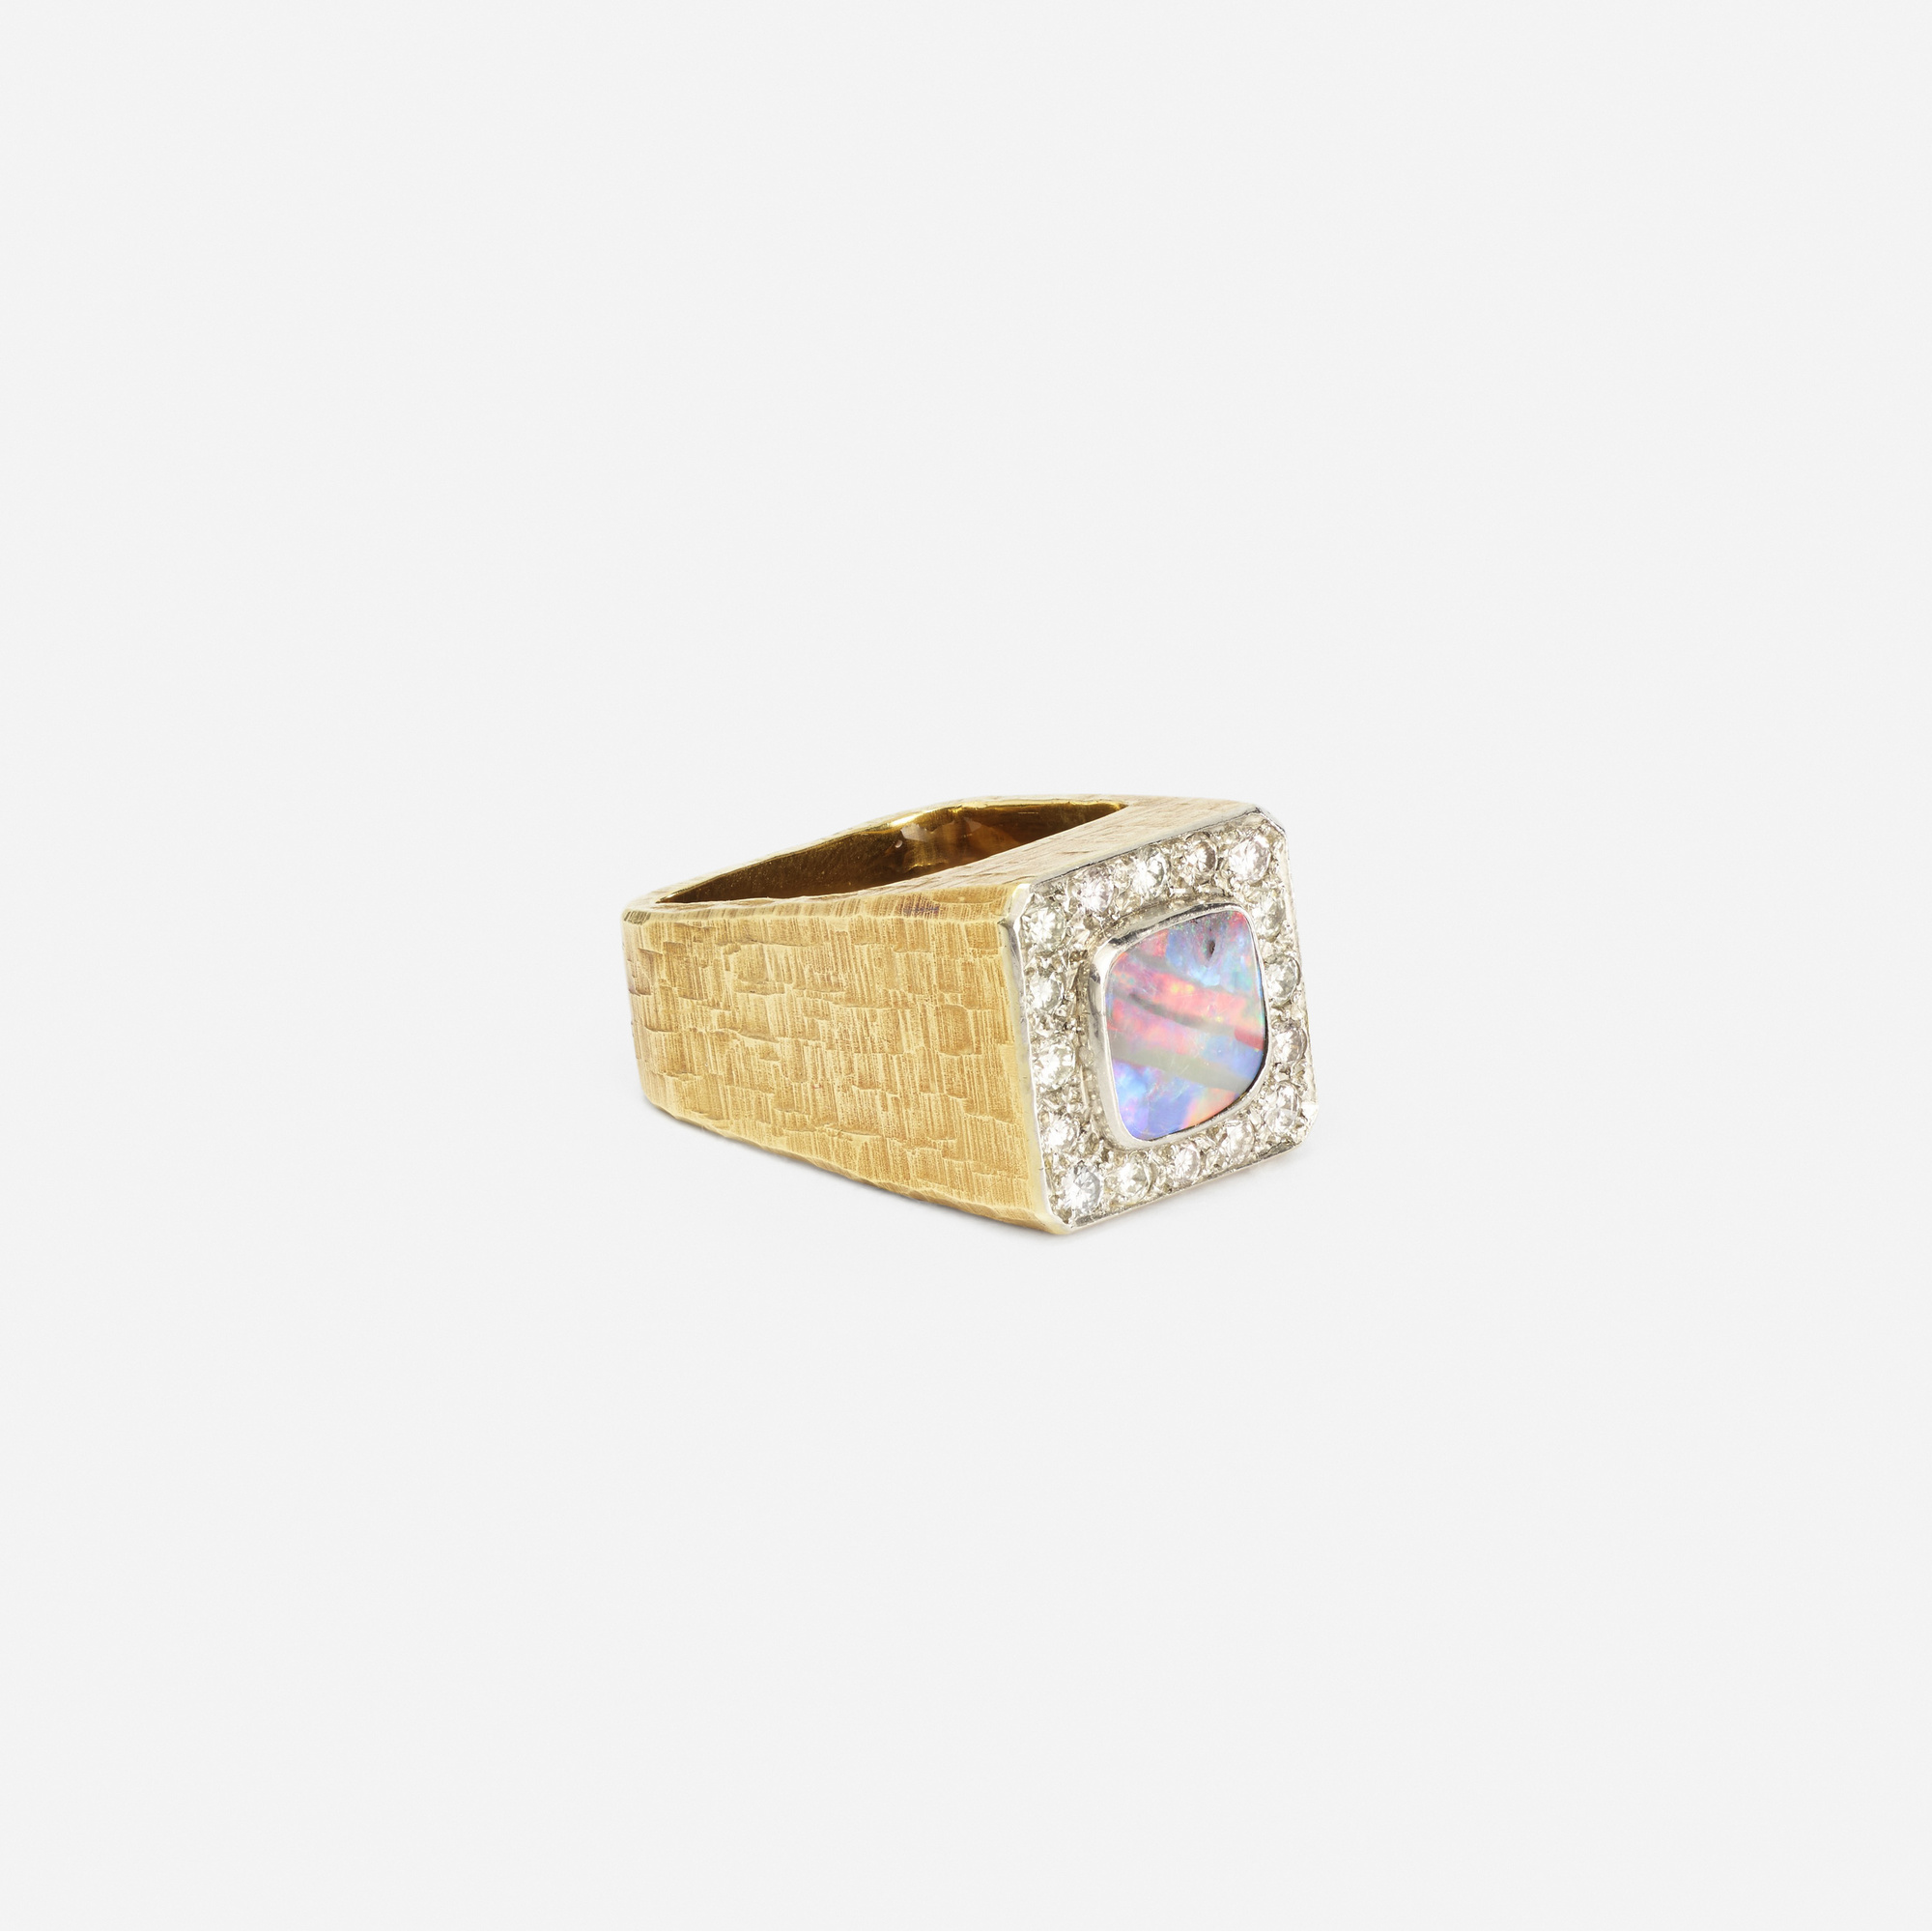 134: Andrew Grima / A gold, black opal and diamond ring (2 of 2)